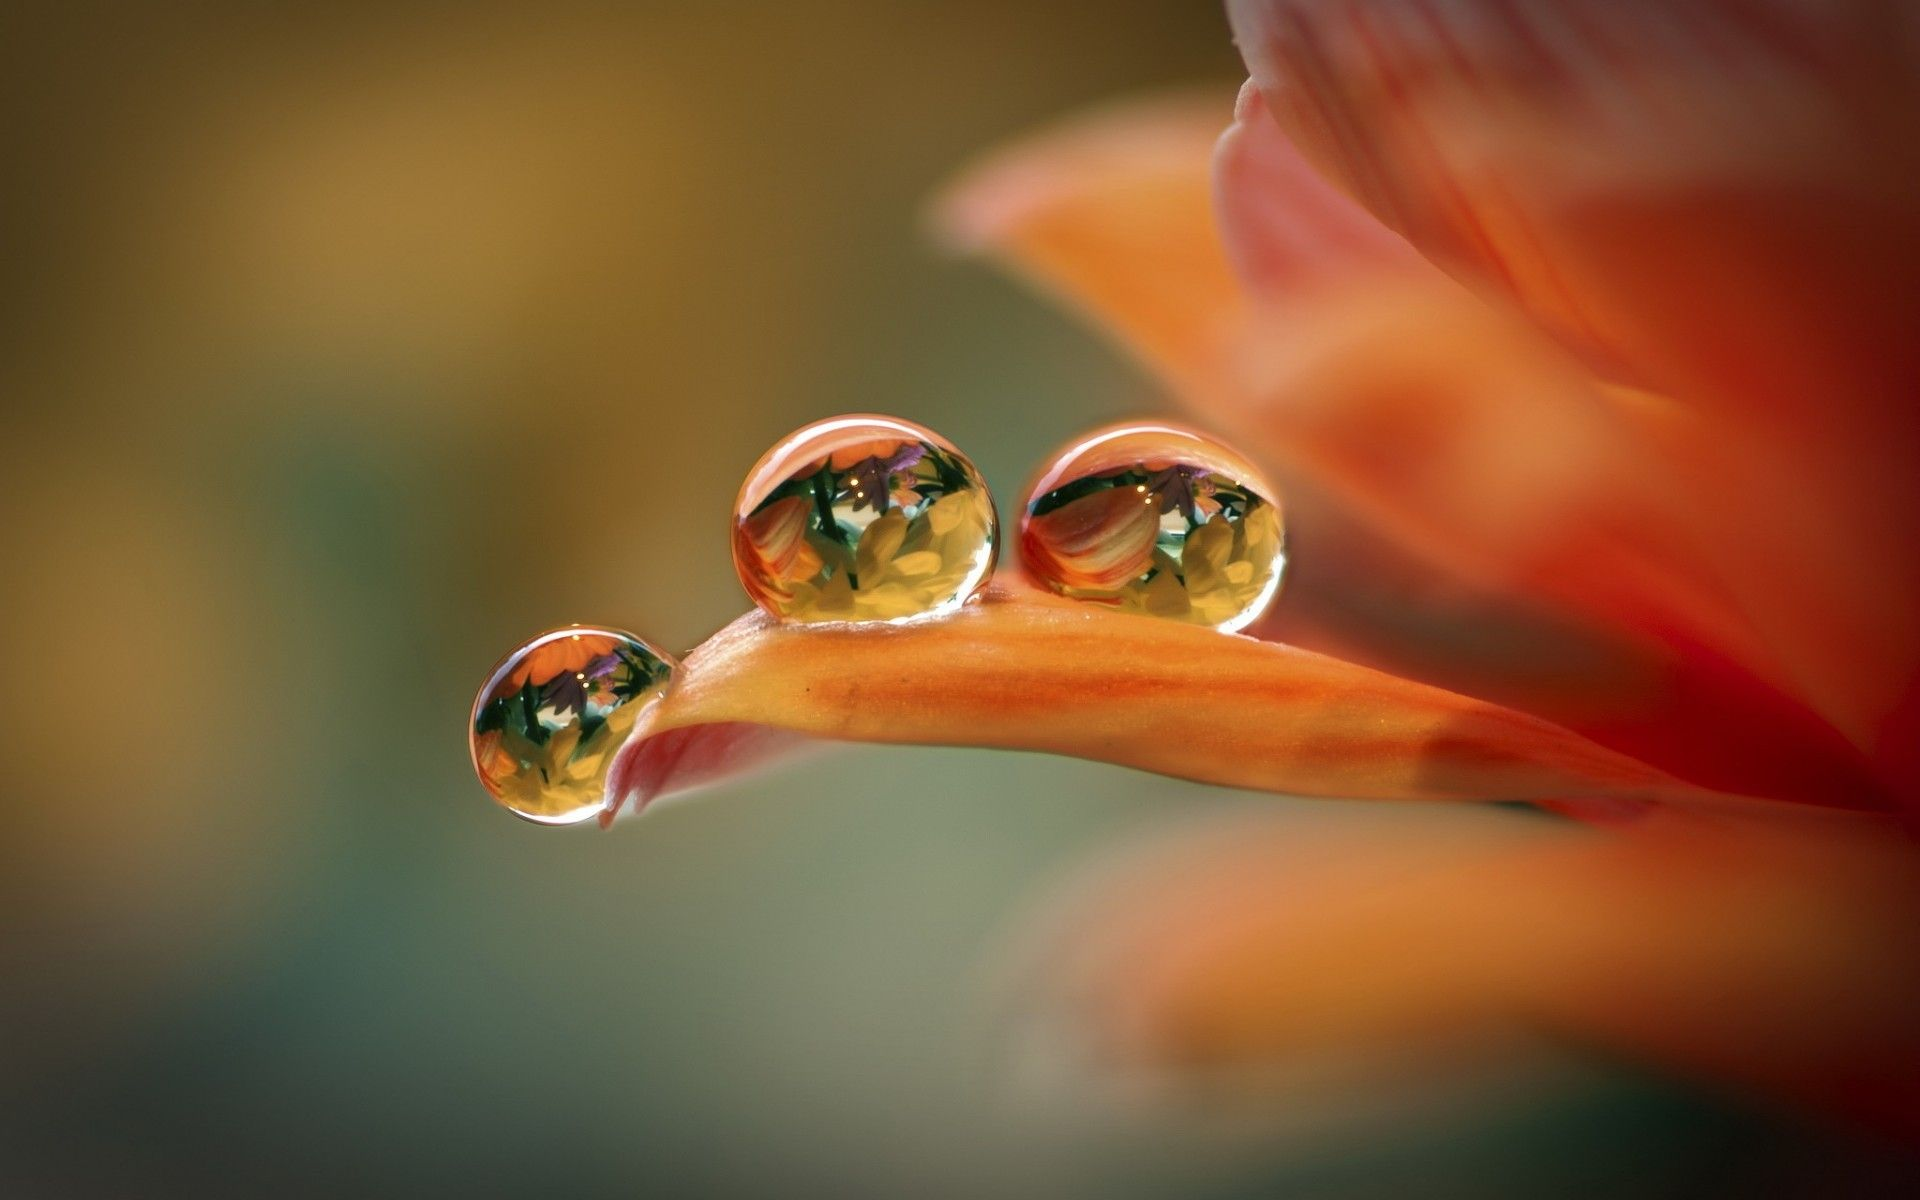 Flowers Droplets Wallpapers HD Pictures One HD Wallpaper 19201200